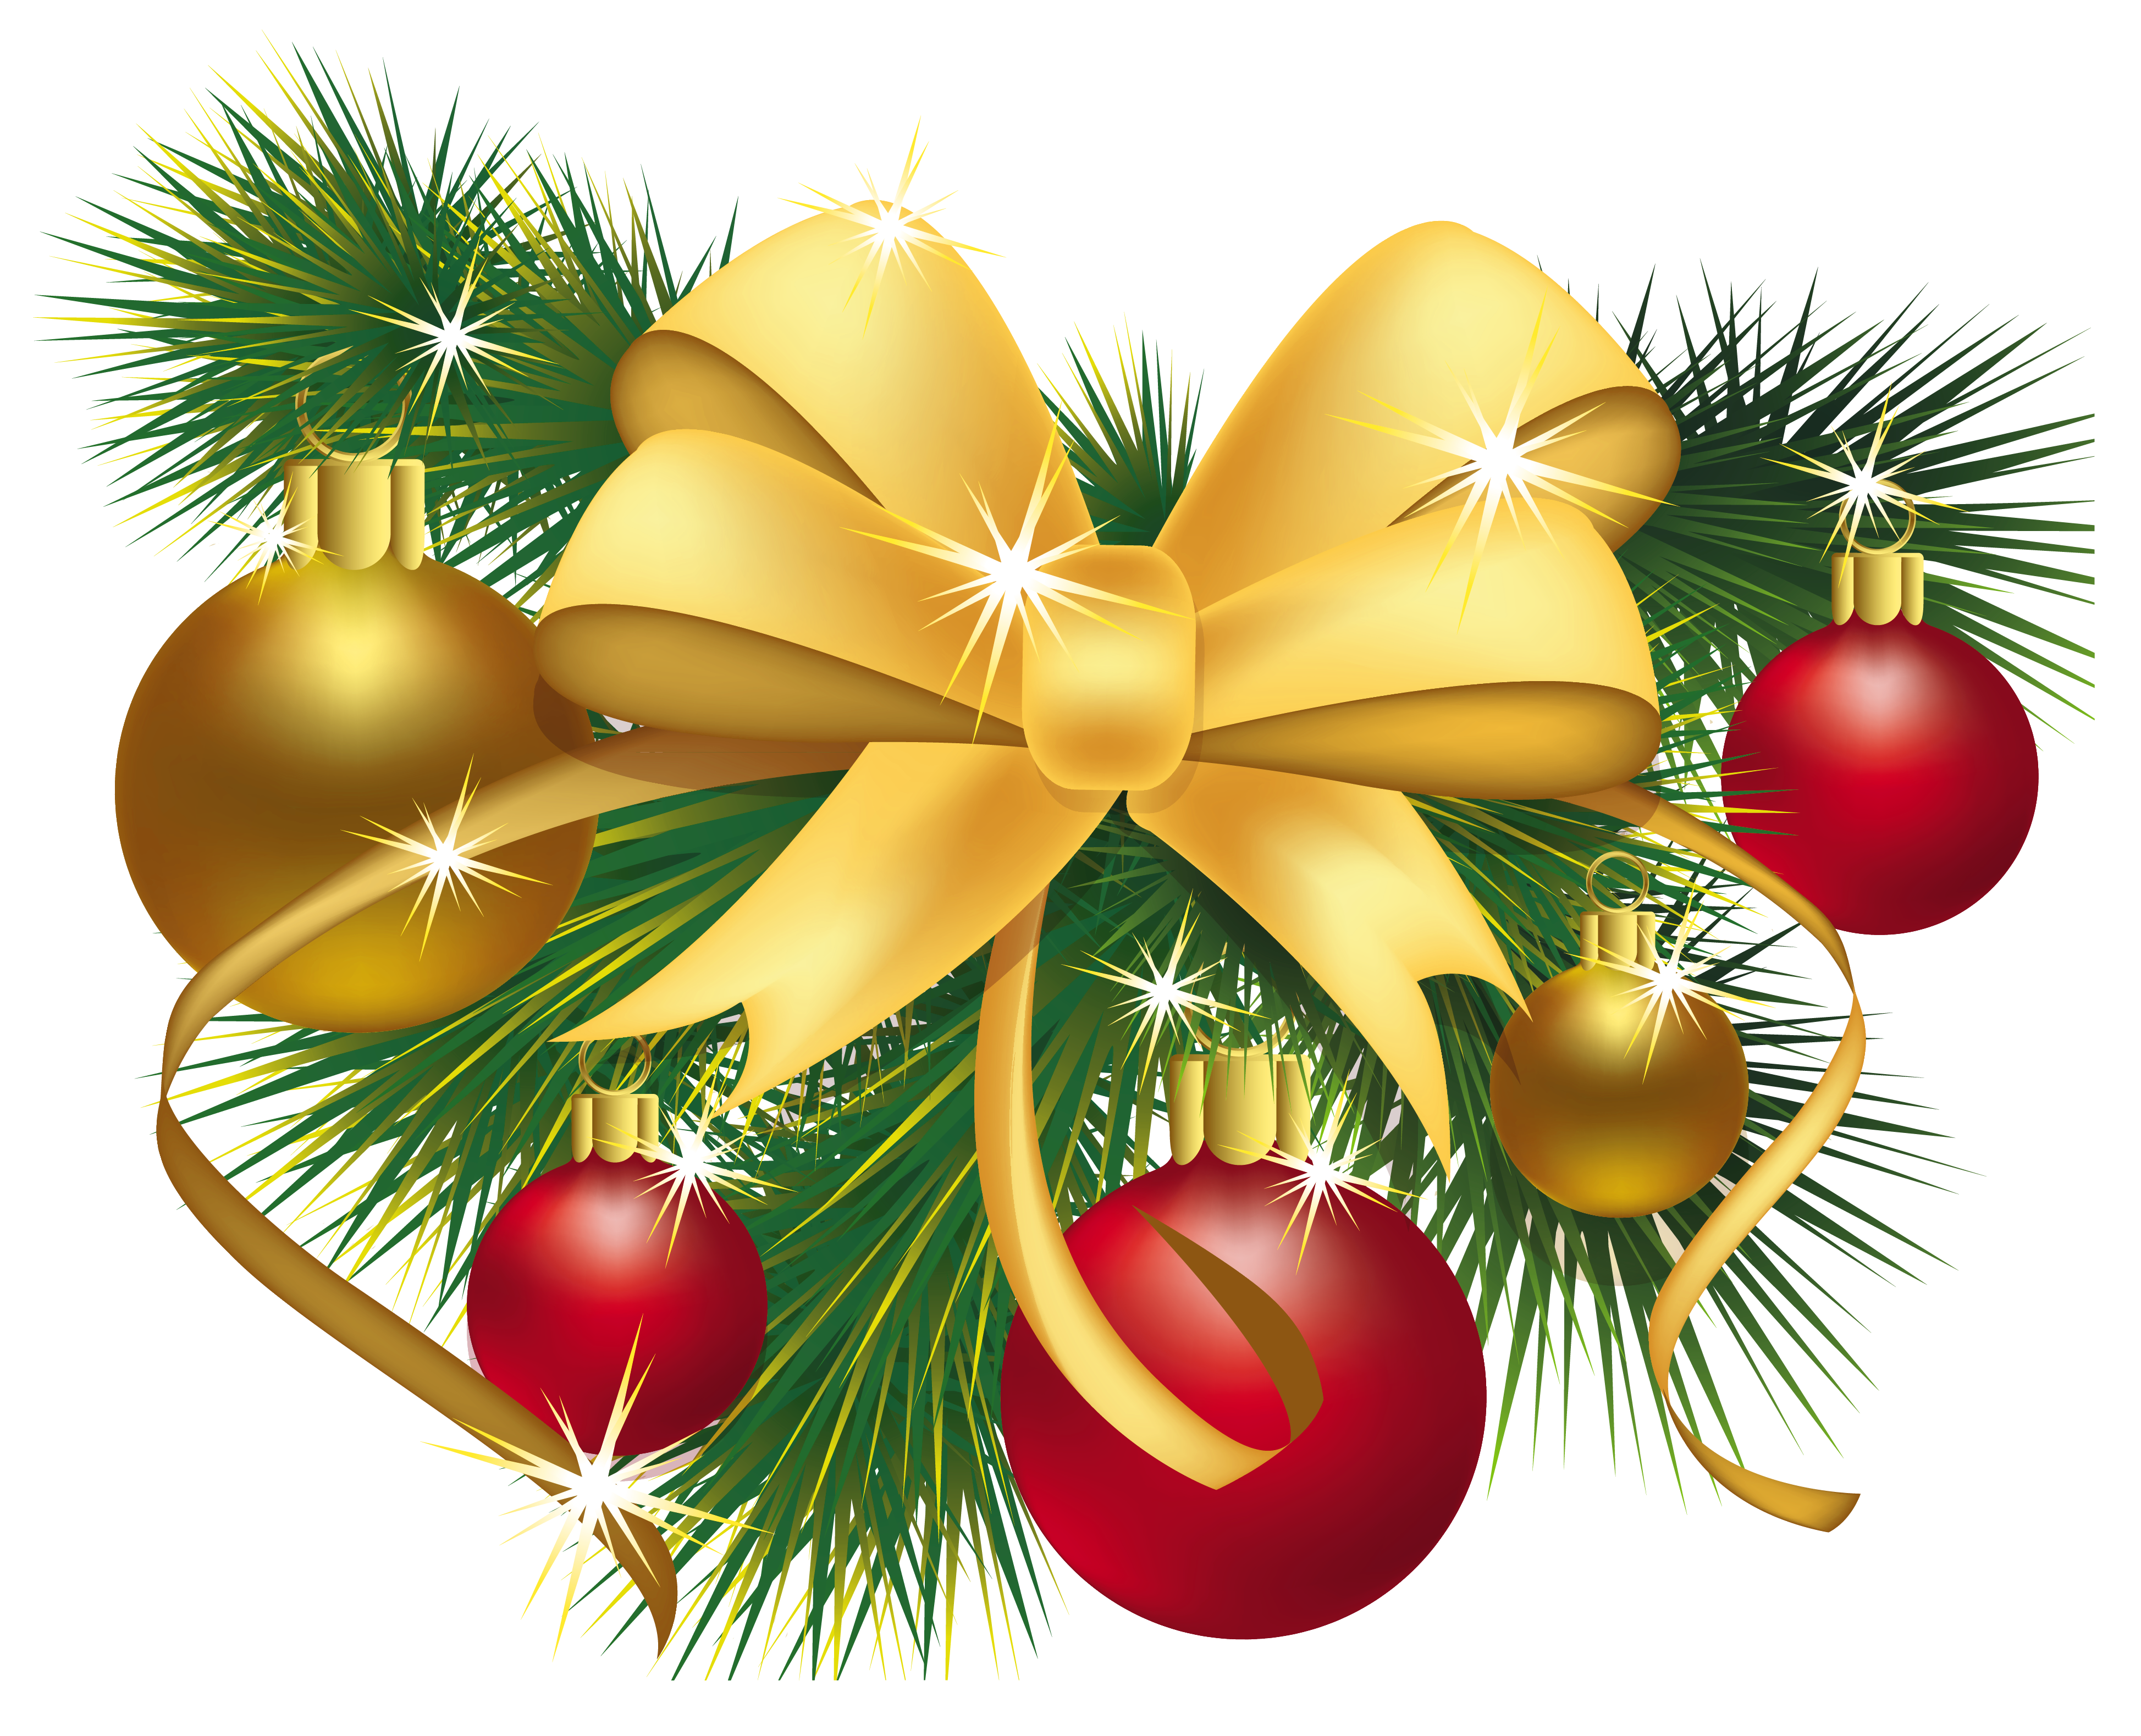 Christmas ornaments png. Images download decoration